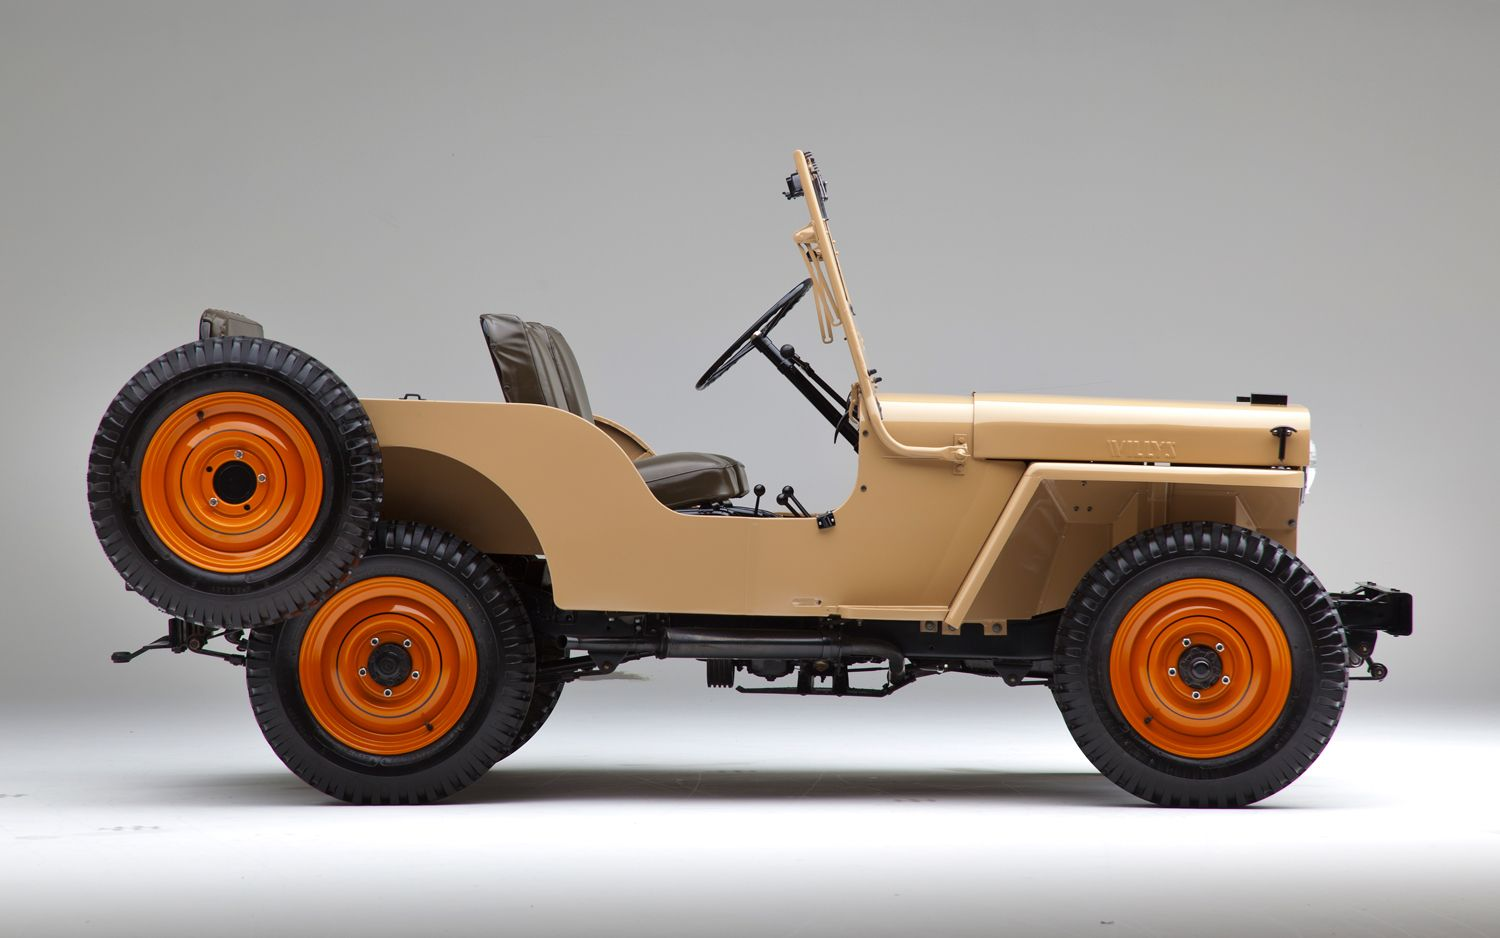 Populaire 1945 Willys Overland Model Cj2a | jeep | Pinterest | Jeeps  OO11